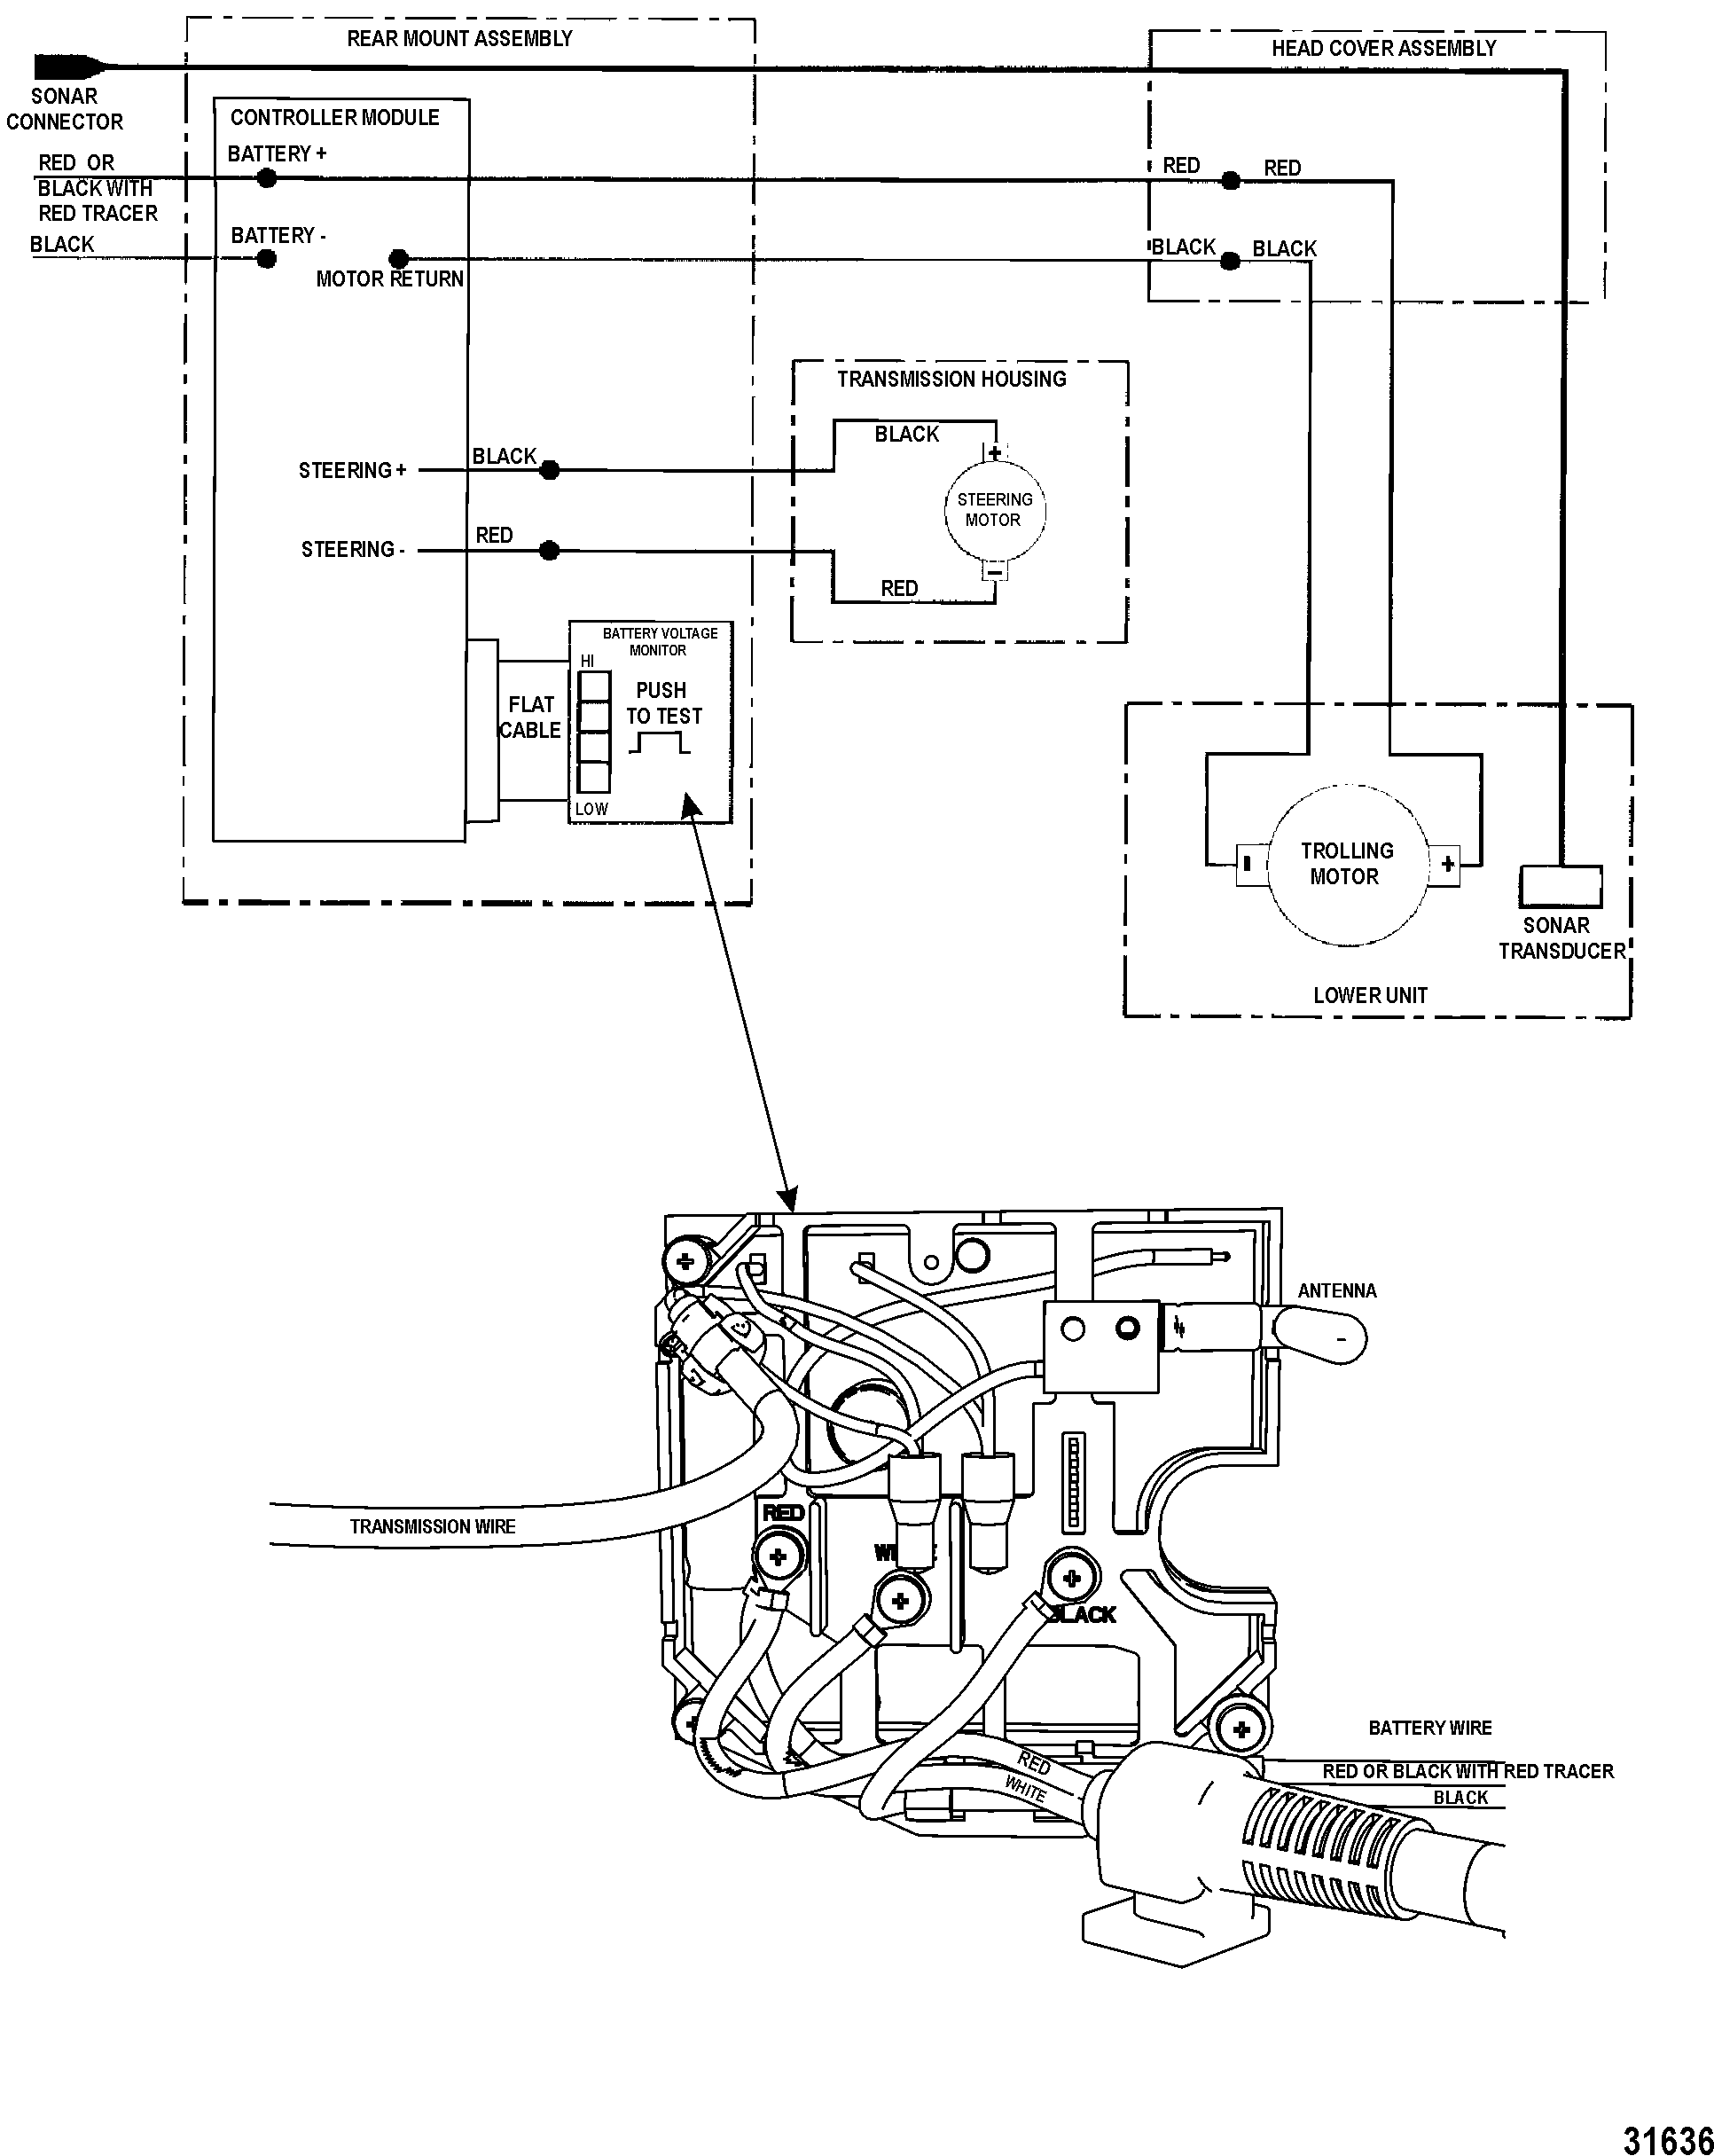 Trolling Motor Battery Wiring Diagram